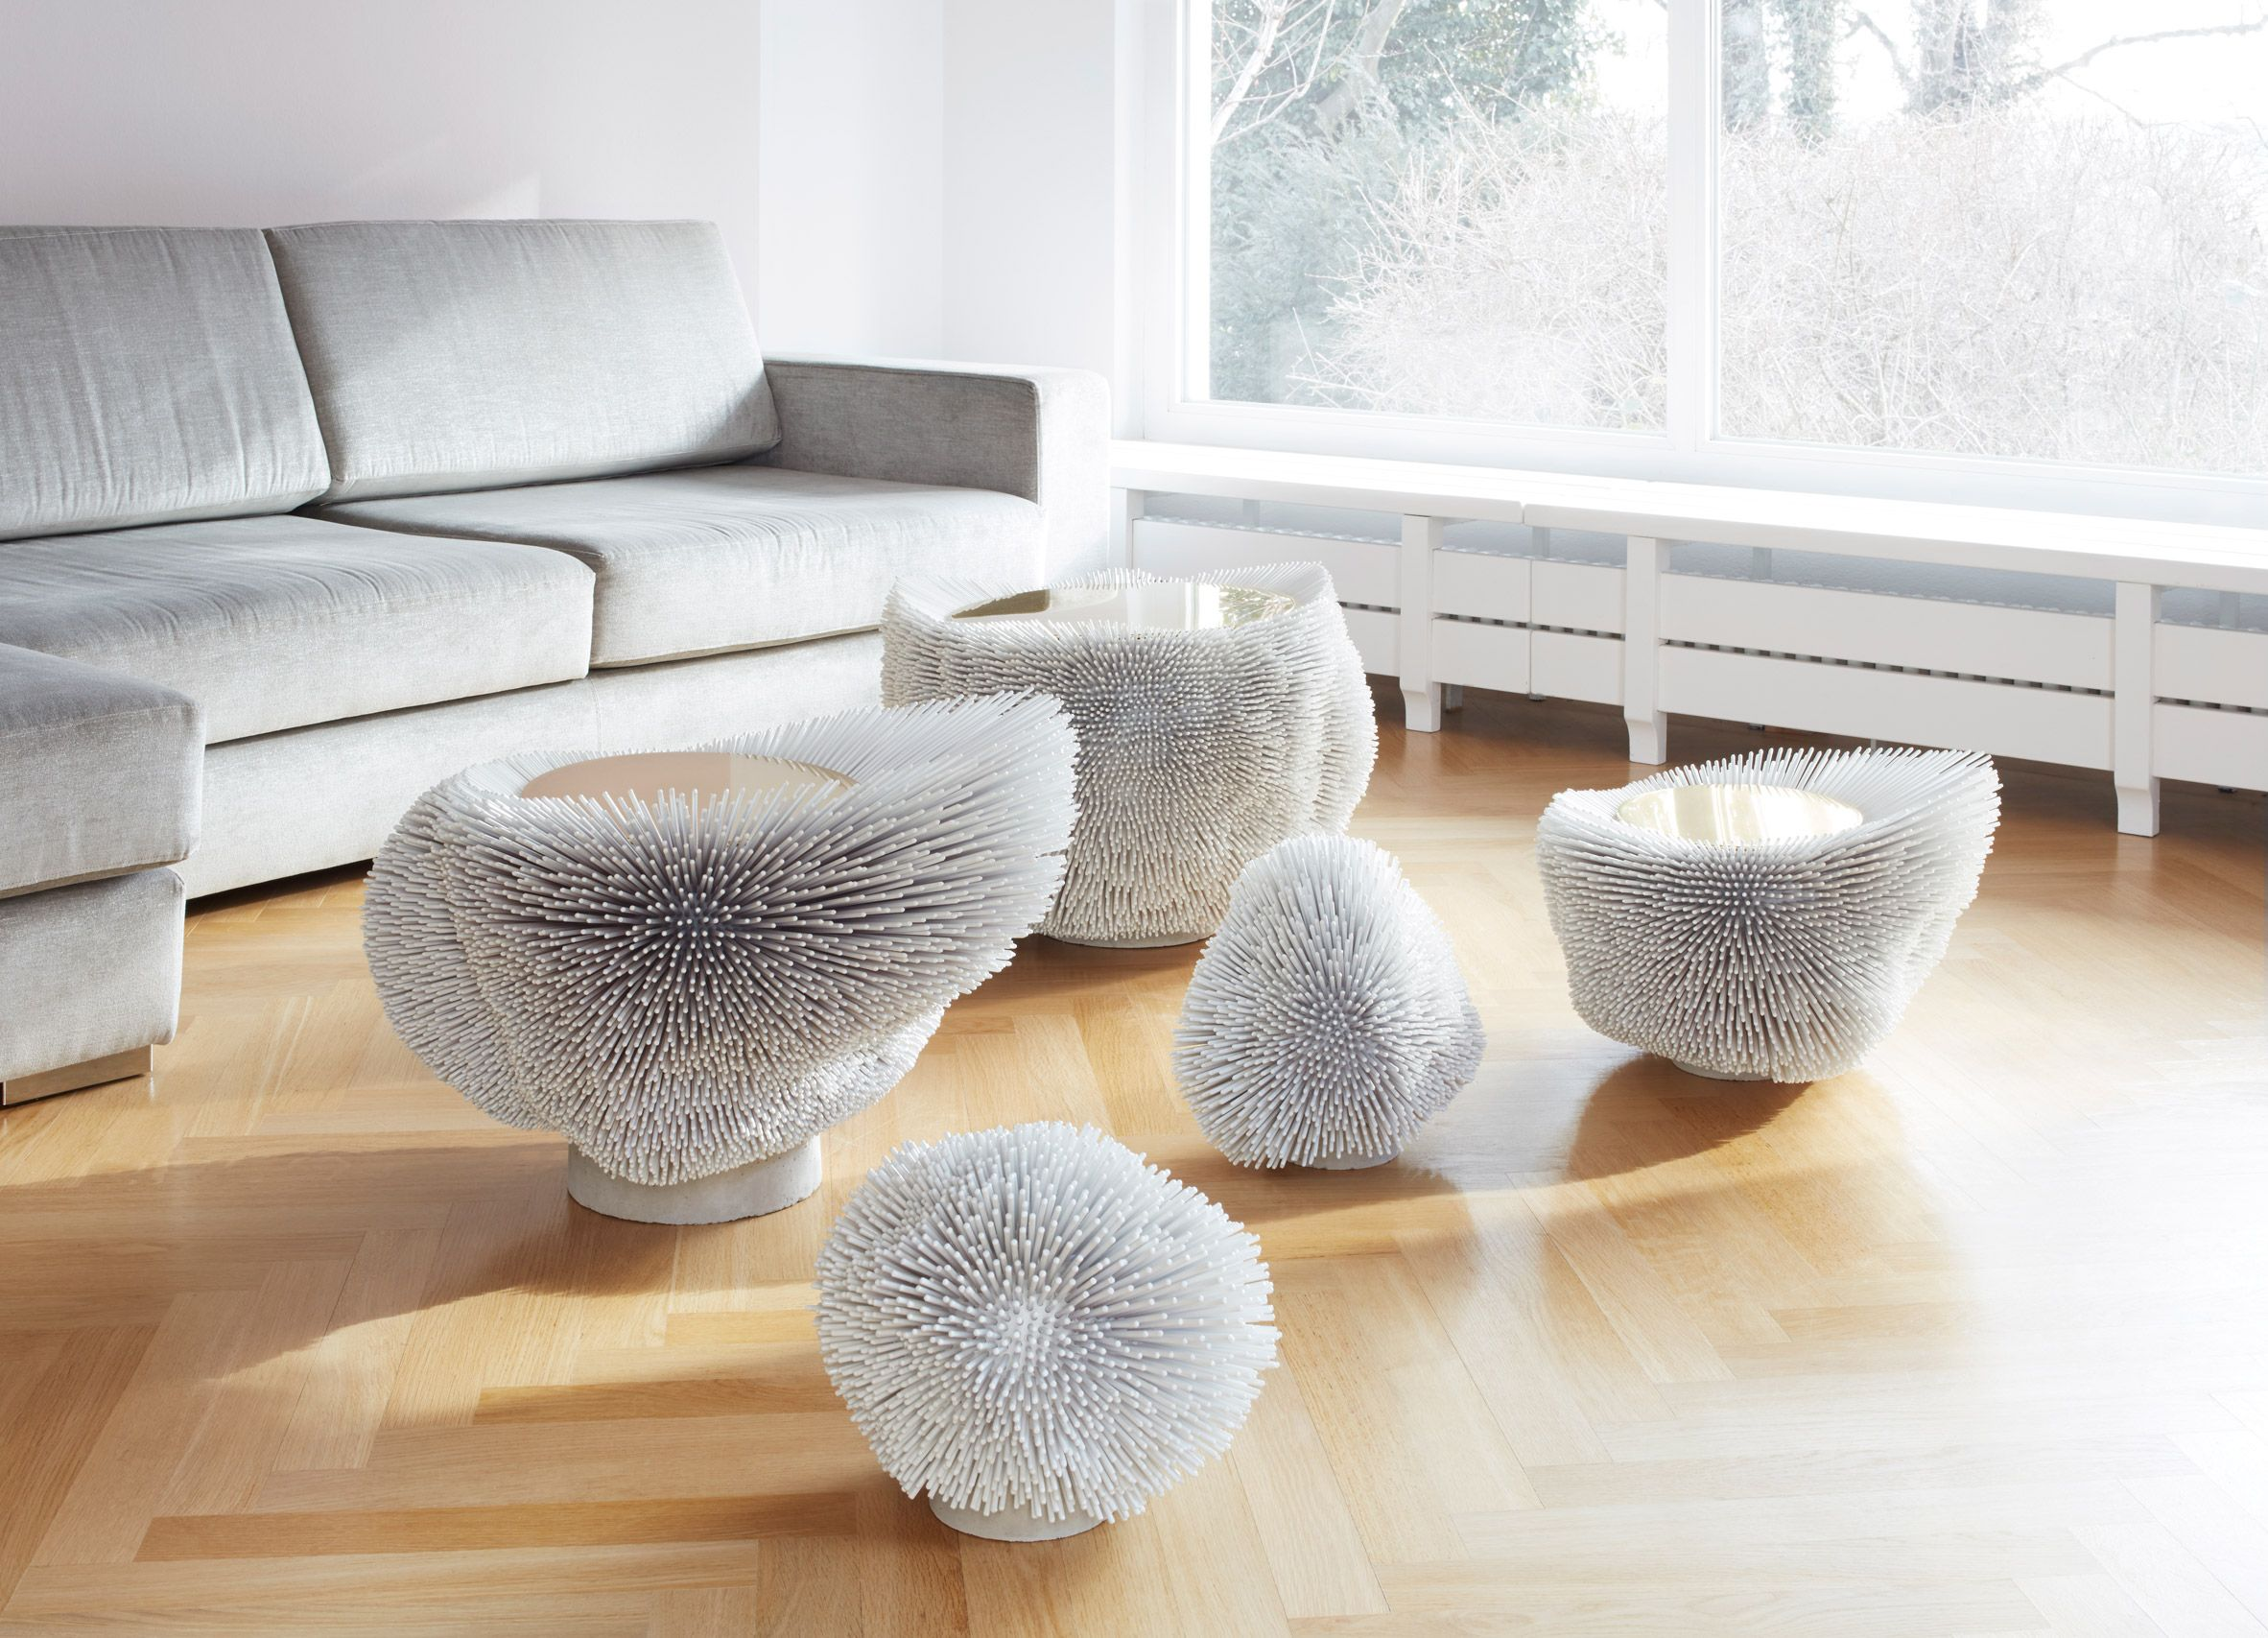 Beech Rods Turned Into Spiky Furniture By Pia Maria Raeder Furniture Art Furniture Modern Coffee Tables [ 1707 x 2364 Pixel ]